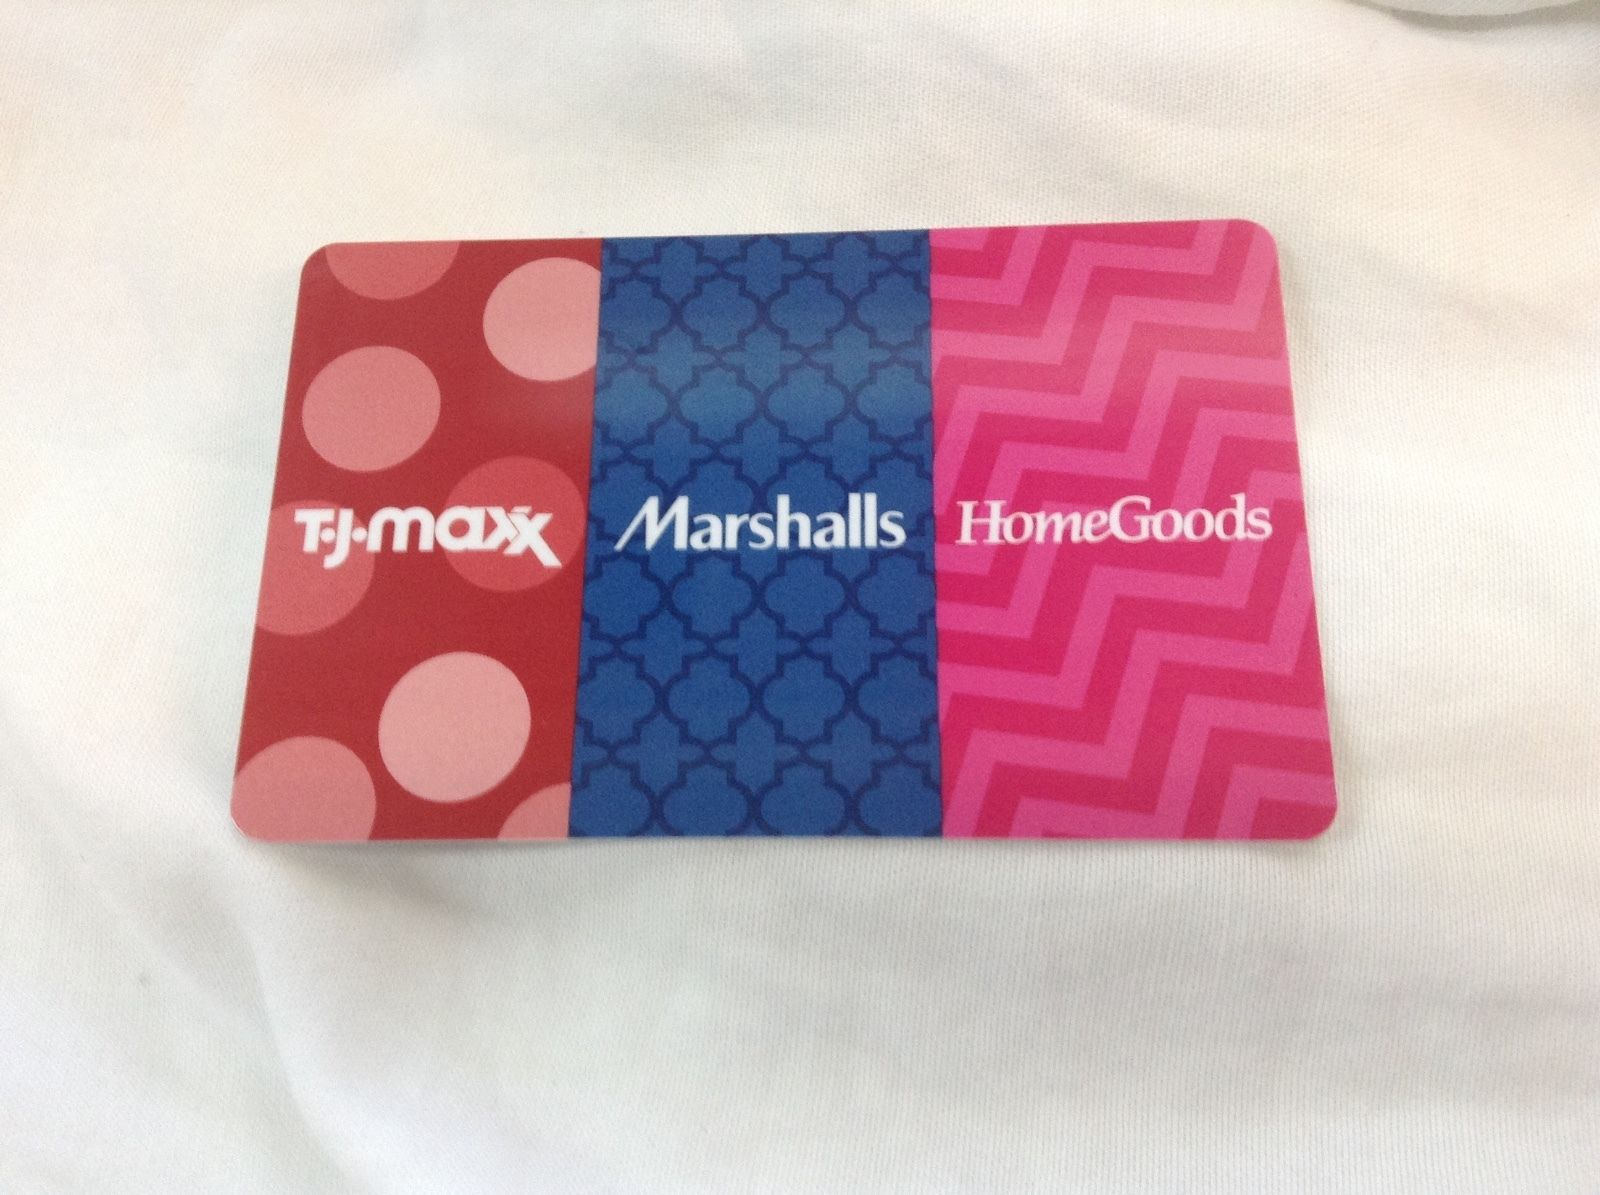 Coupons giftcards 8478 tj maxx marshalls homegoods